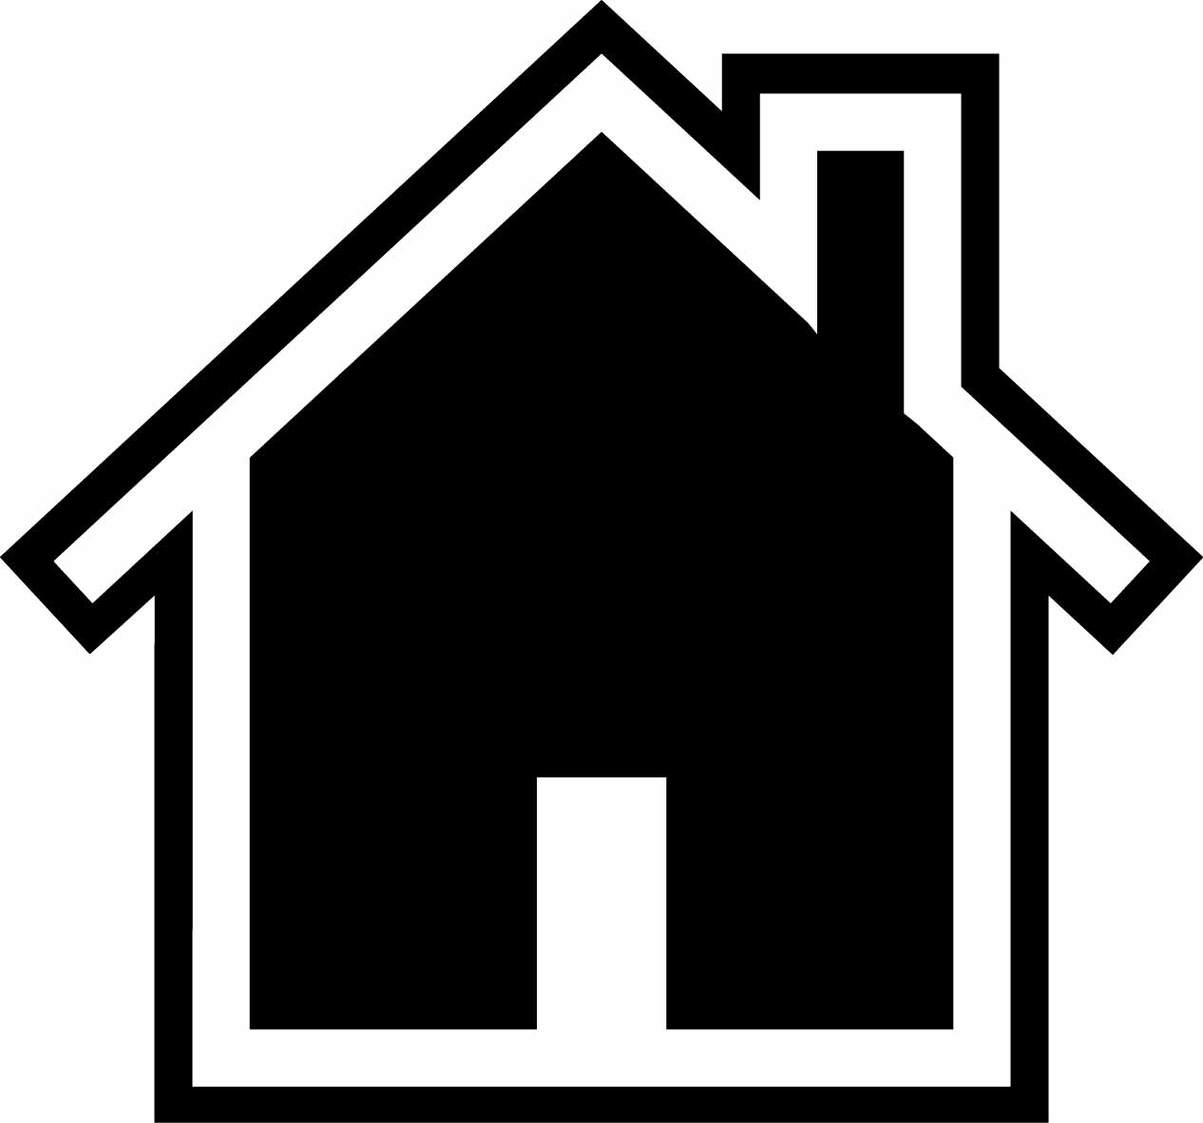 Rooftop clipart house outline #7